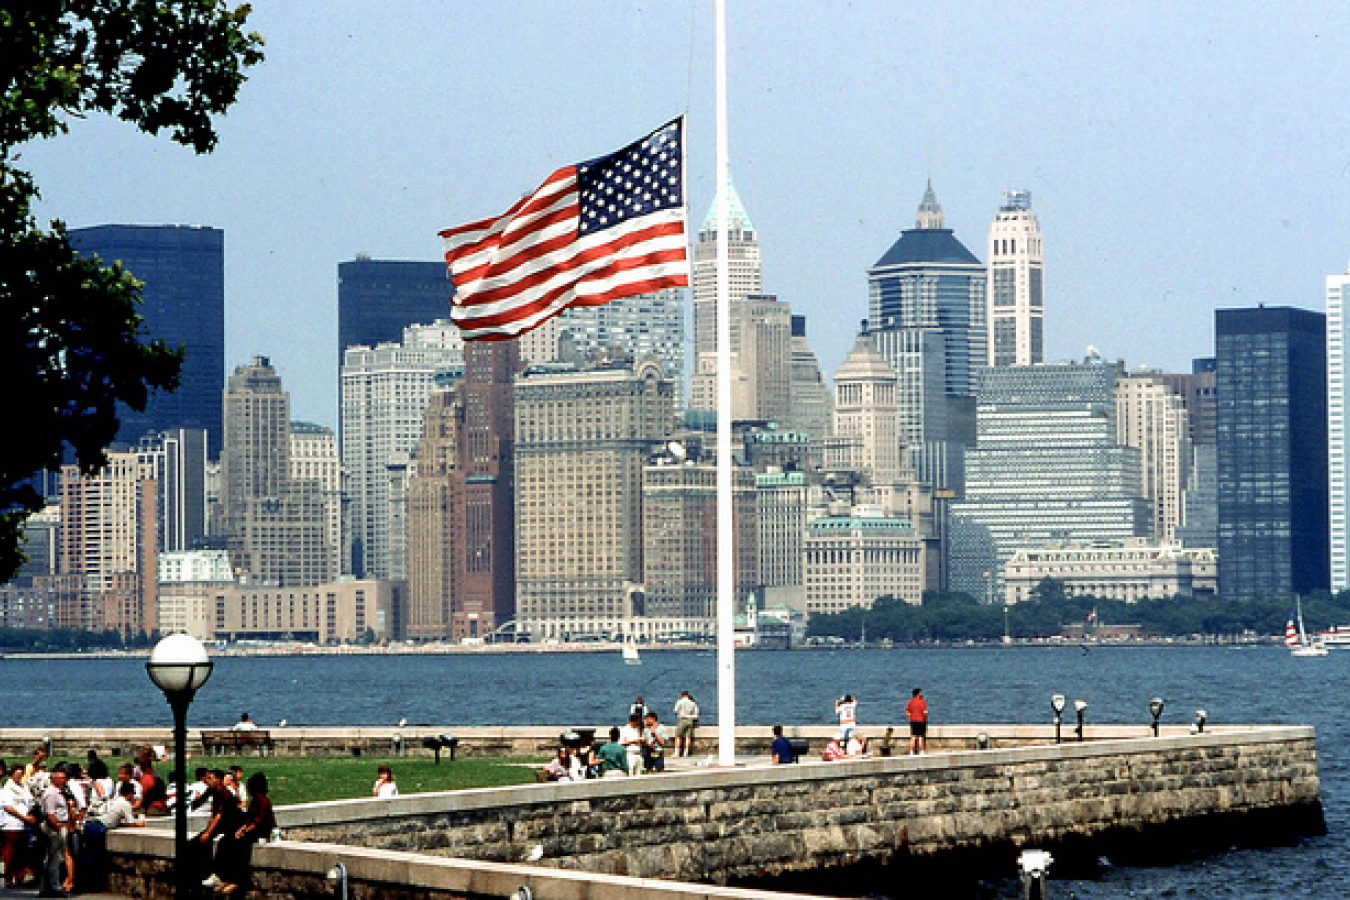 19950704 05 Manhattan Island from Ellis Island